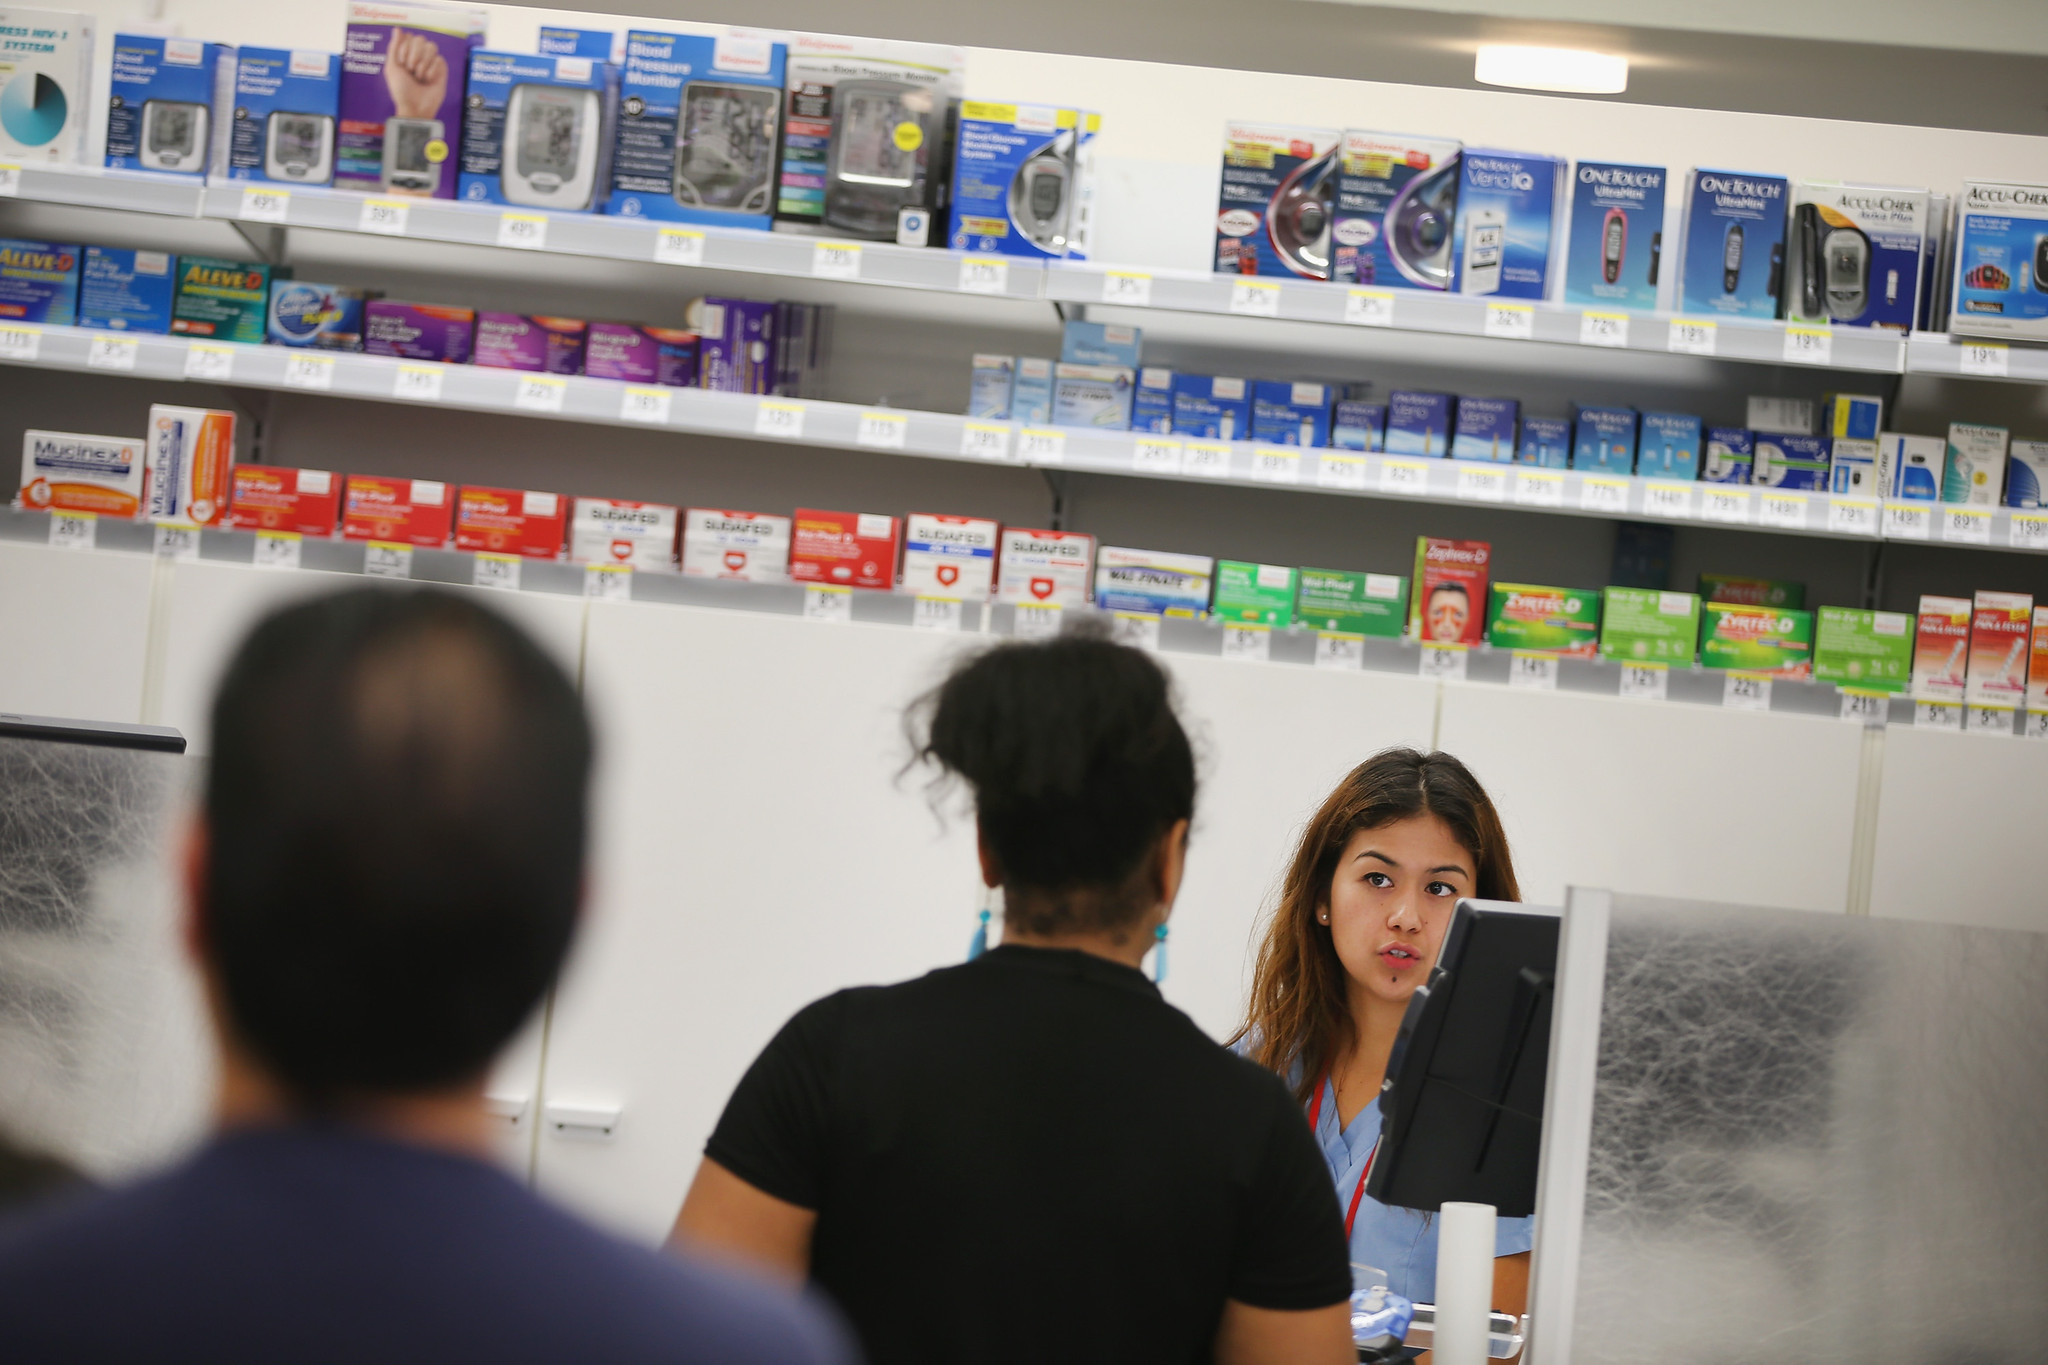 walgreens computer outage delays prescriptions chicago tribune